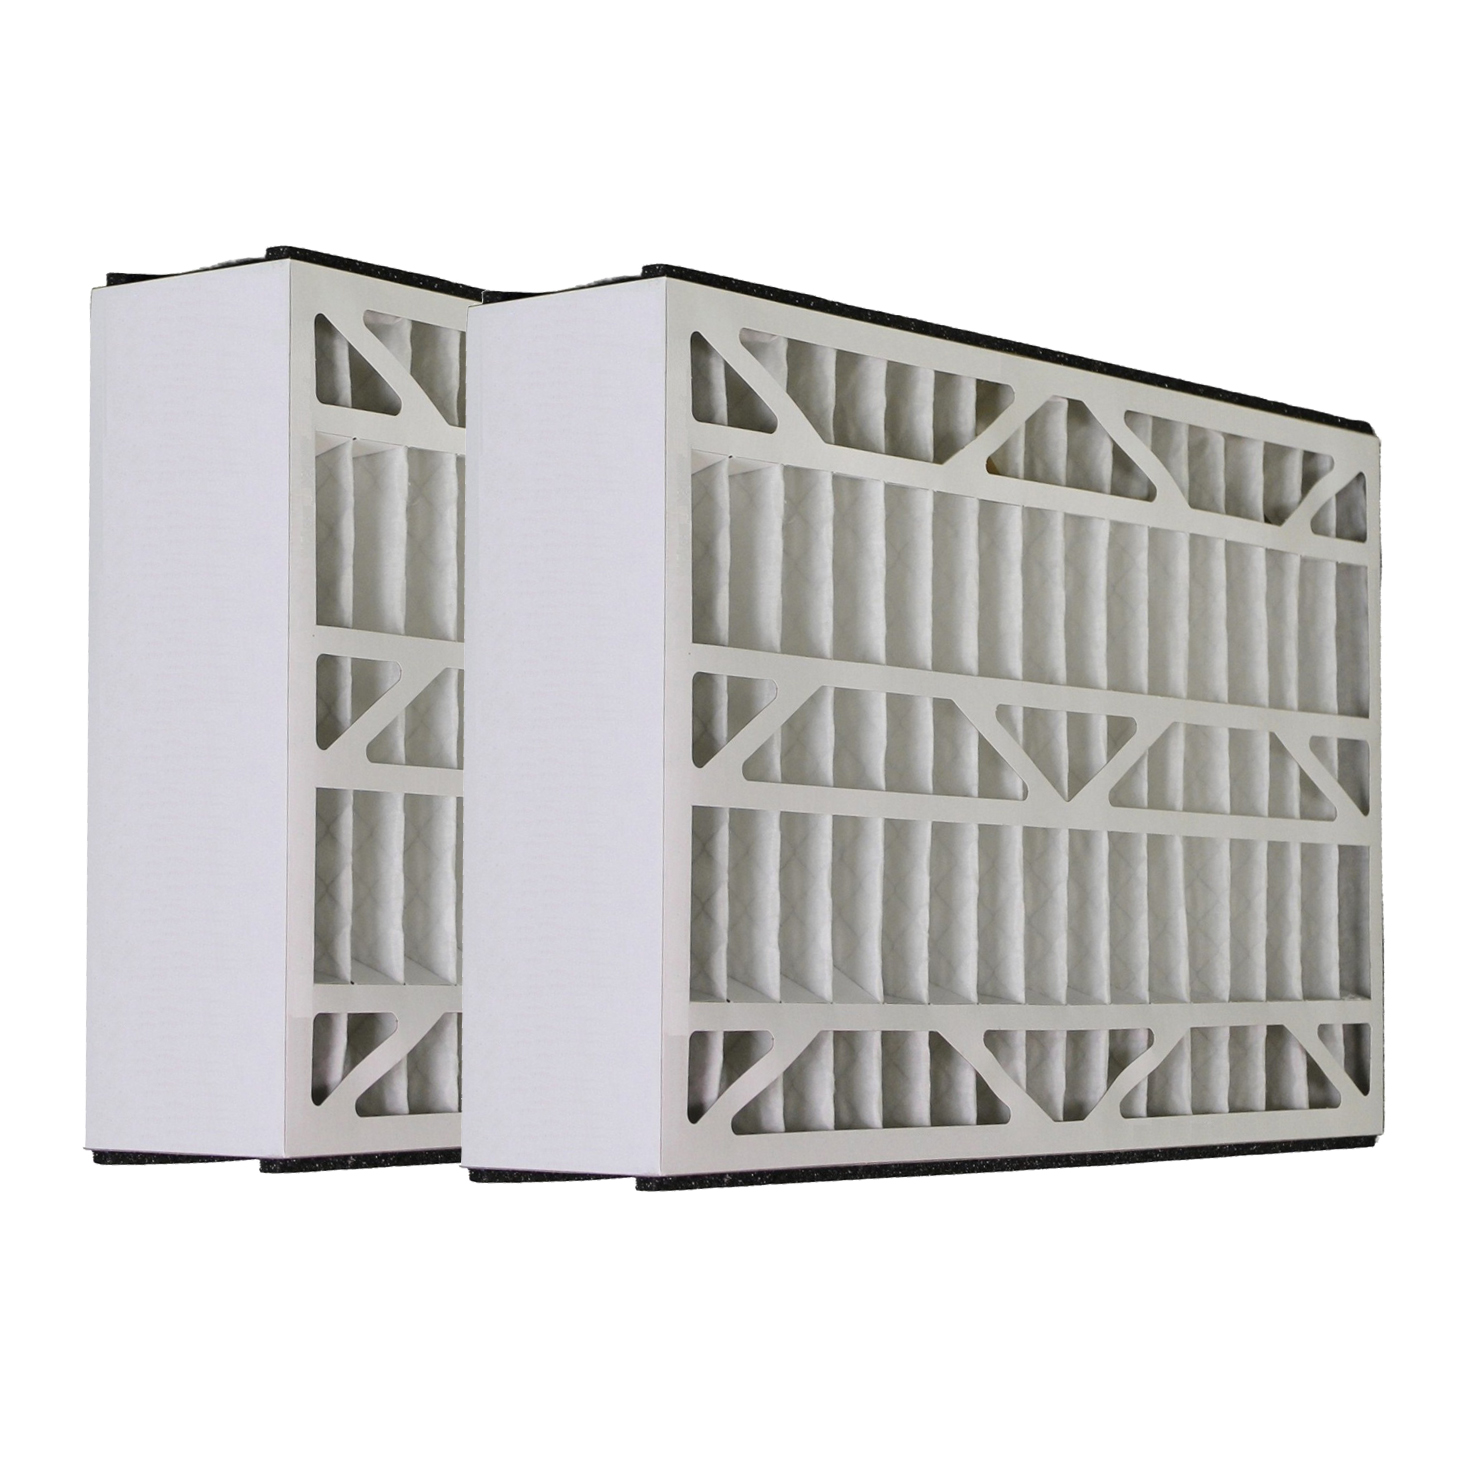 Tier1 Replacement for Day & Night 20x25x5 Merv 11 Air Filter 2 Pack